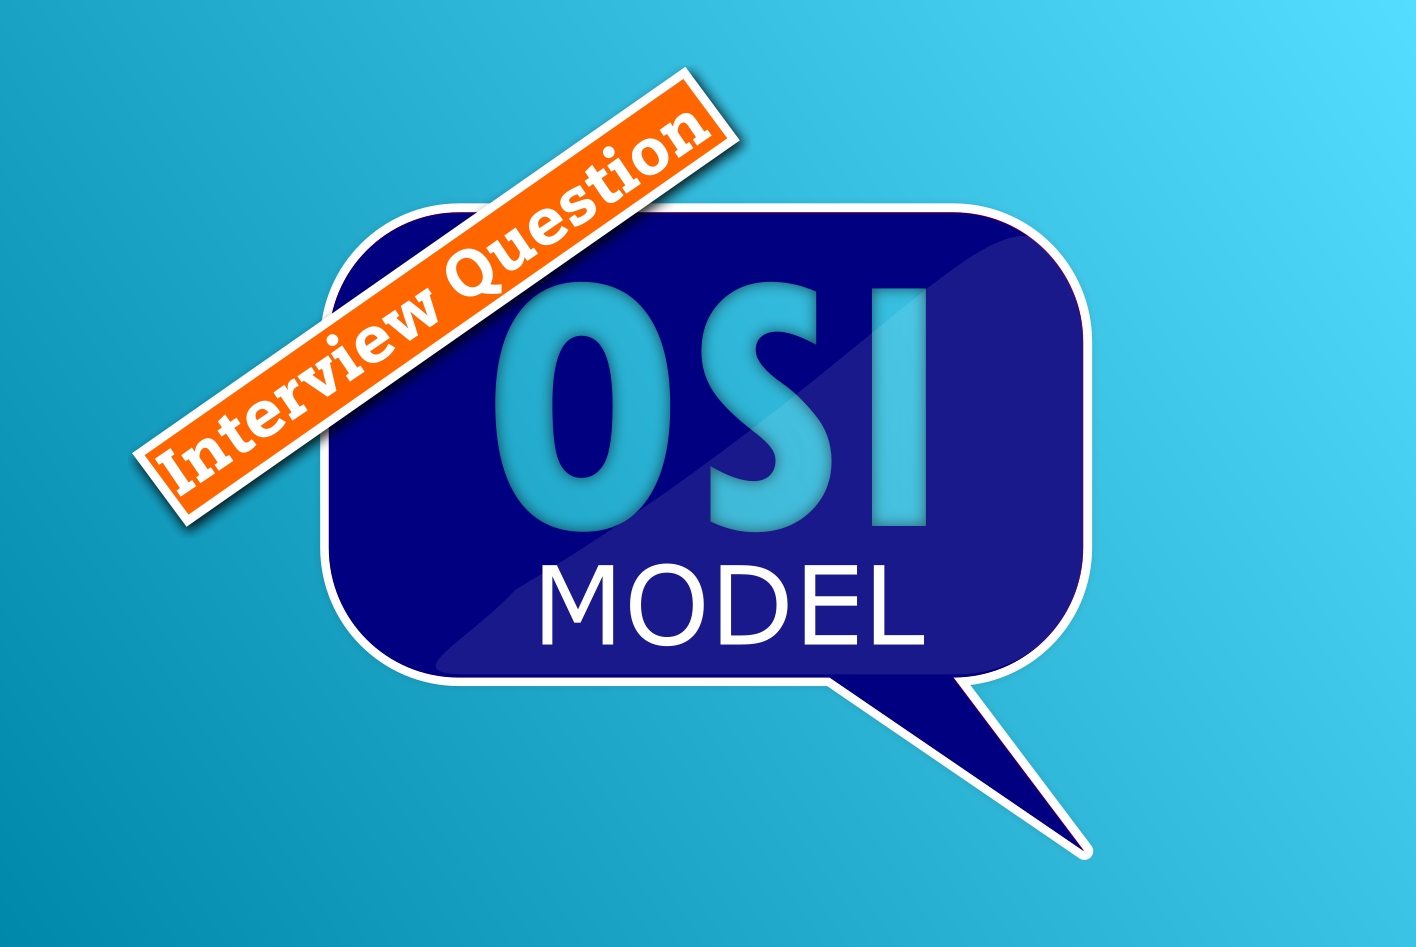 """Interview Questions on- OSI model <span class=""""bsf-rt-reading-time""""><span class=""""bsf-rt-display-label"""" prefix=""""Reading Time""""></span> <span class=""""bsf-rt-display-time"""" reading_time=""""5""""></span> <span class=""""bsf-rt-display-postfix"""" postfix=""""mins""""></span></span><!-- .bsf-rt-reading-time -->"""